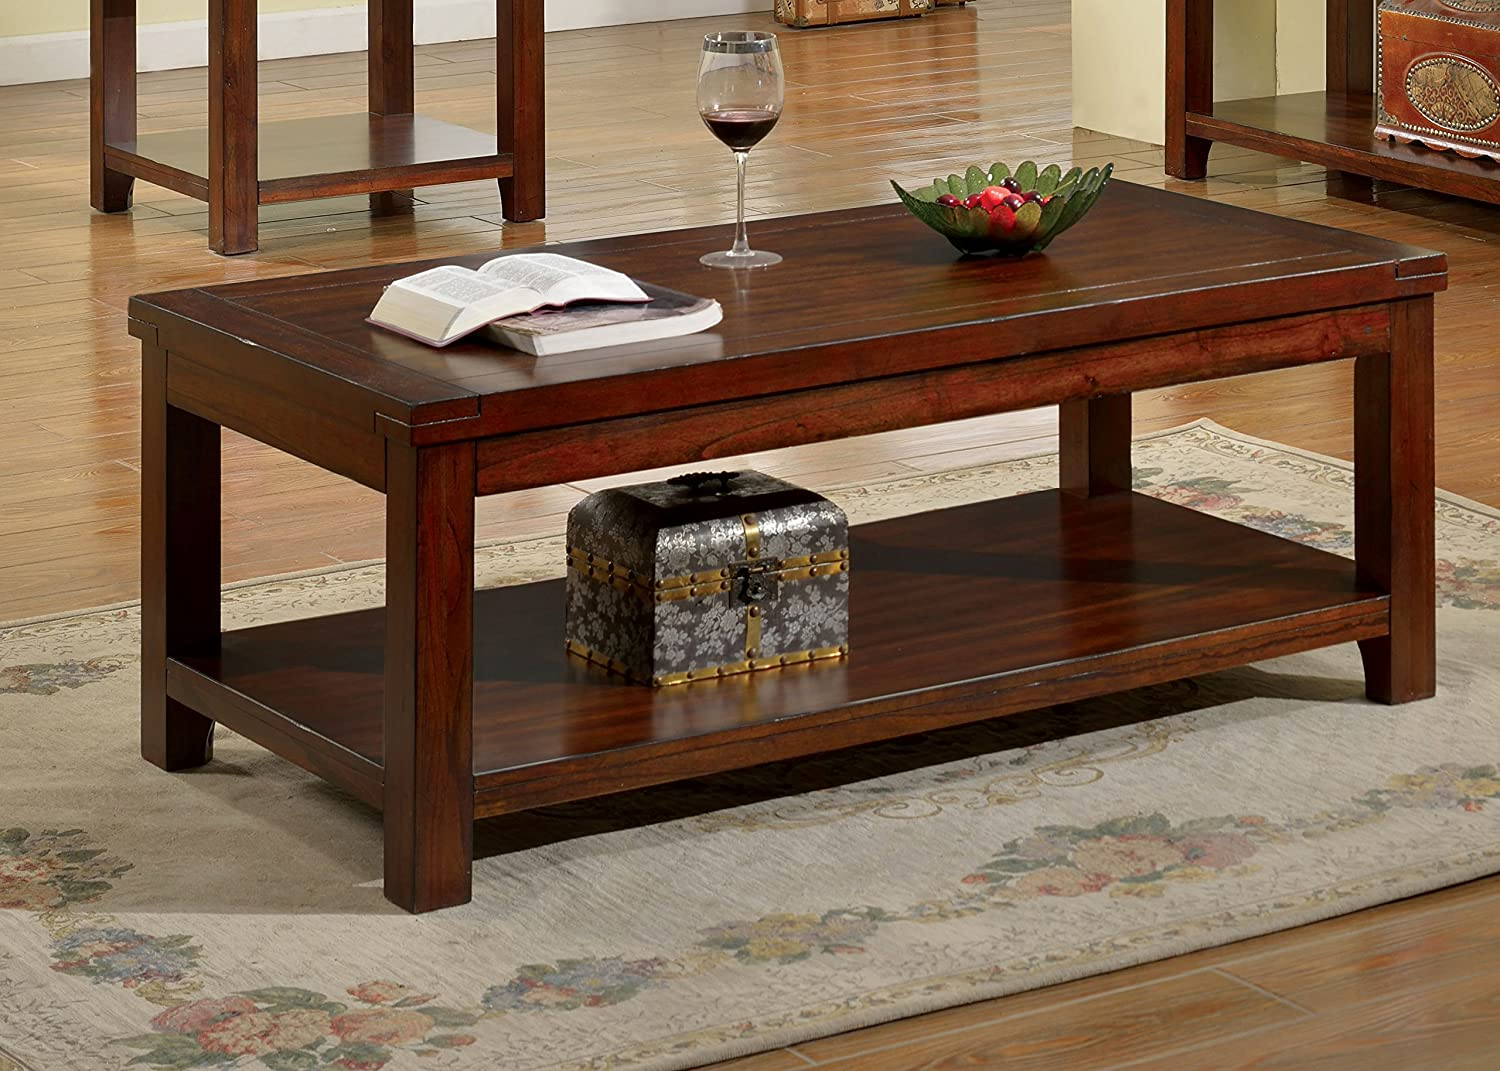 Furniture of America IDF-4107C Coffee Table, Dark Cherry